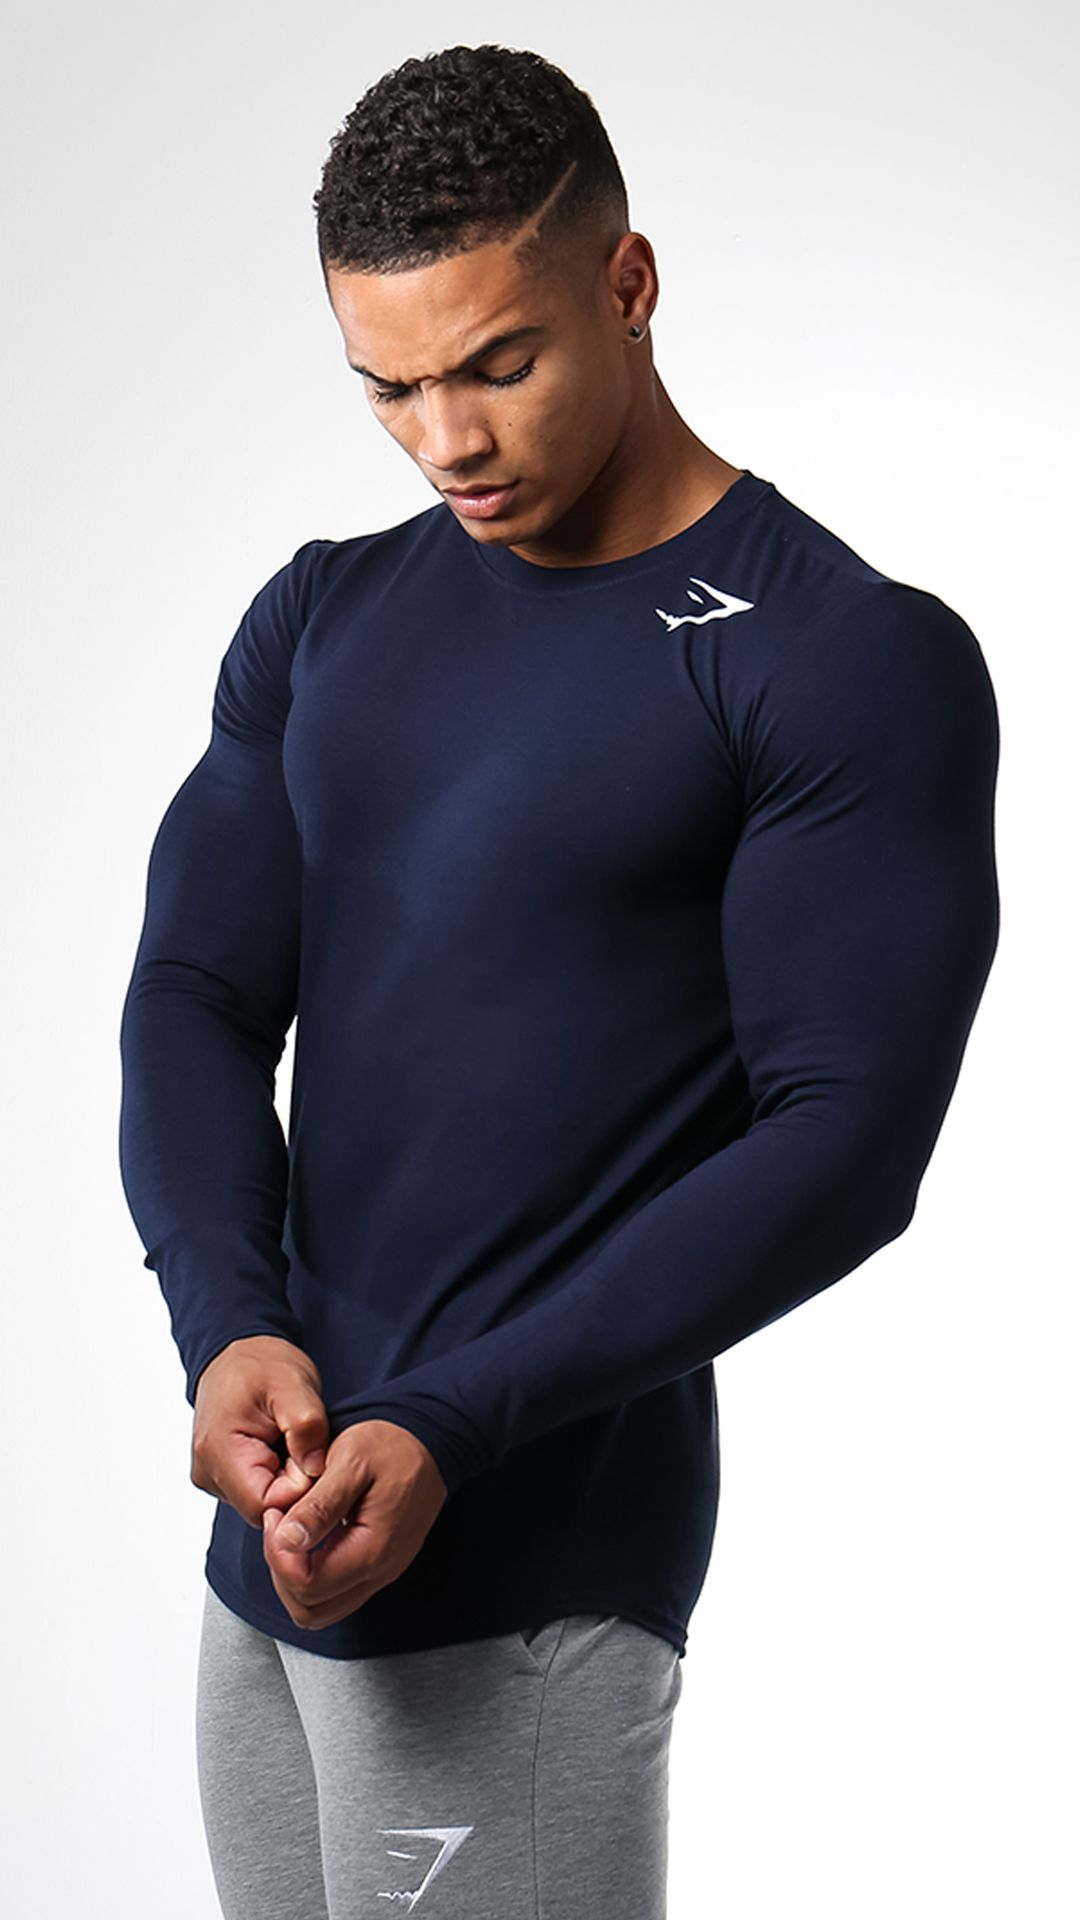 Trend Mark Fitness Men Long Sleeve Basketball Running Sports T Shirt Men Thermal Muscle Bodybuilding Gym Compression Tights Shirts Shirts